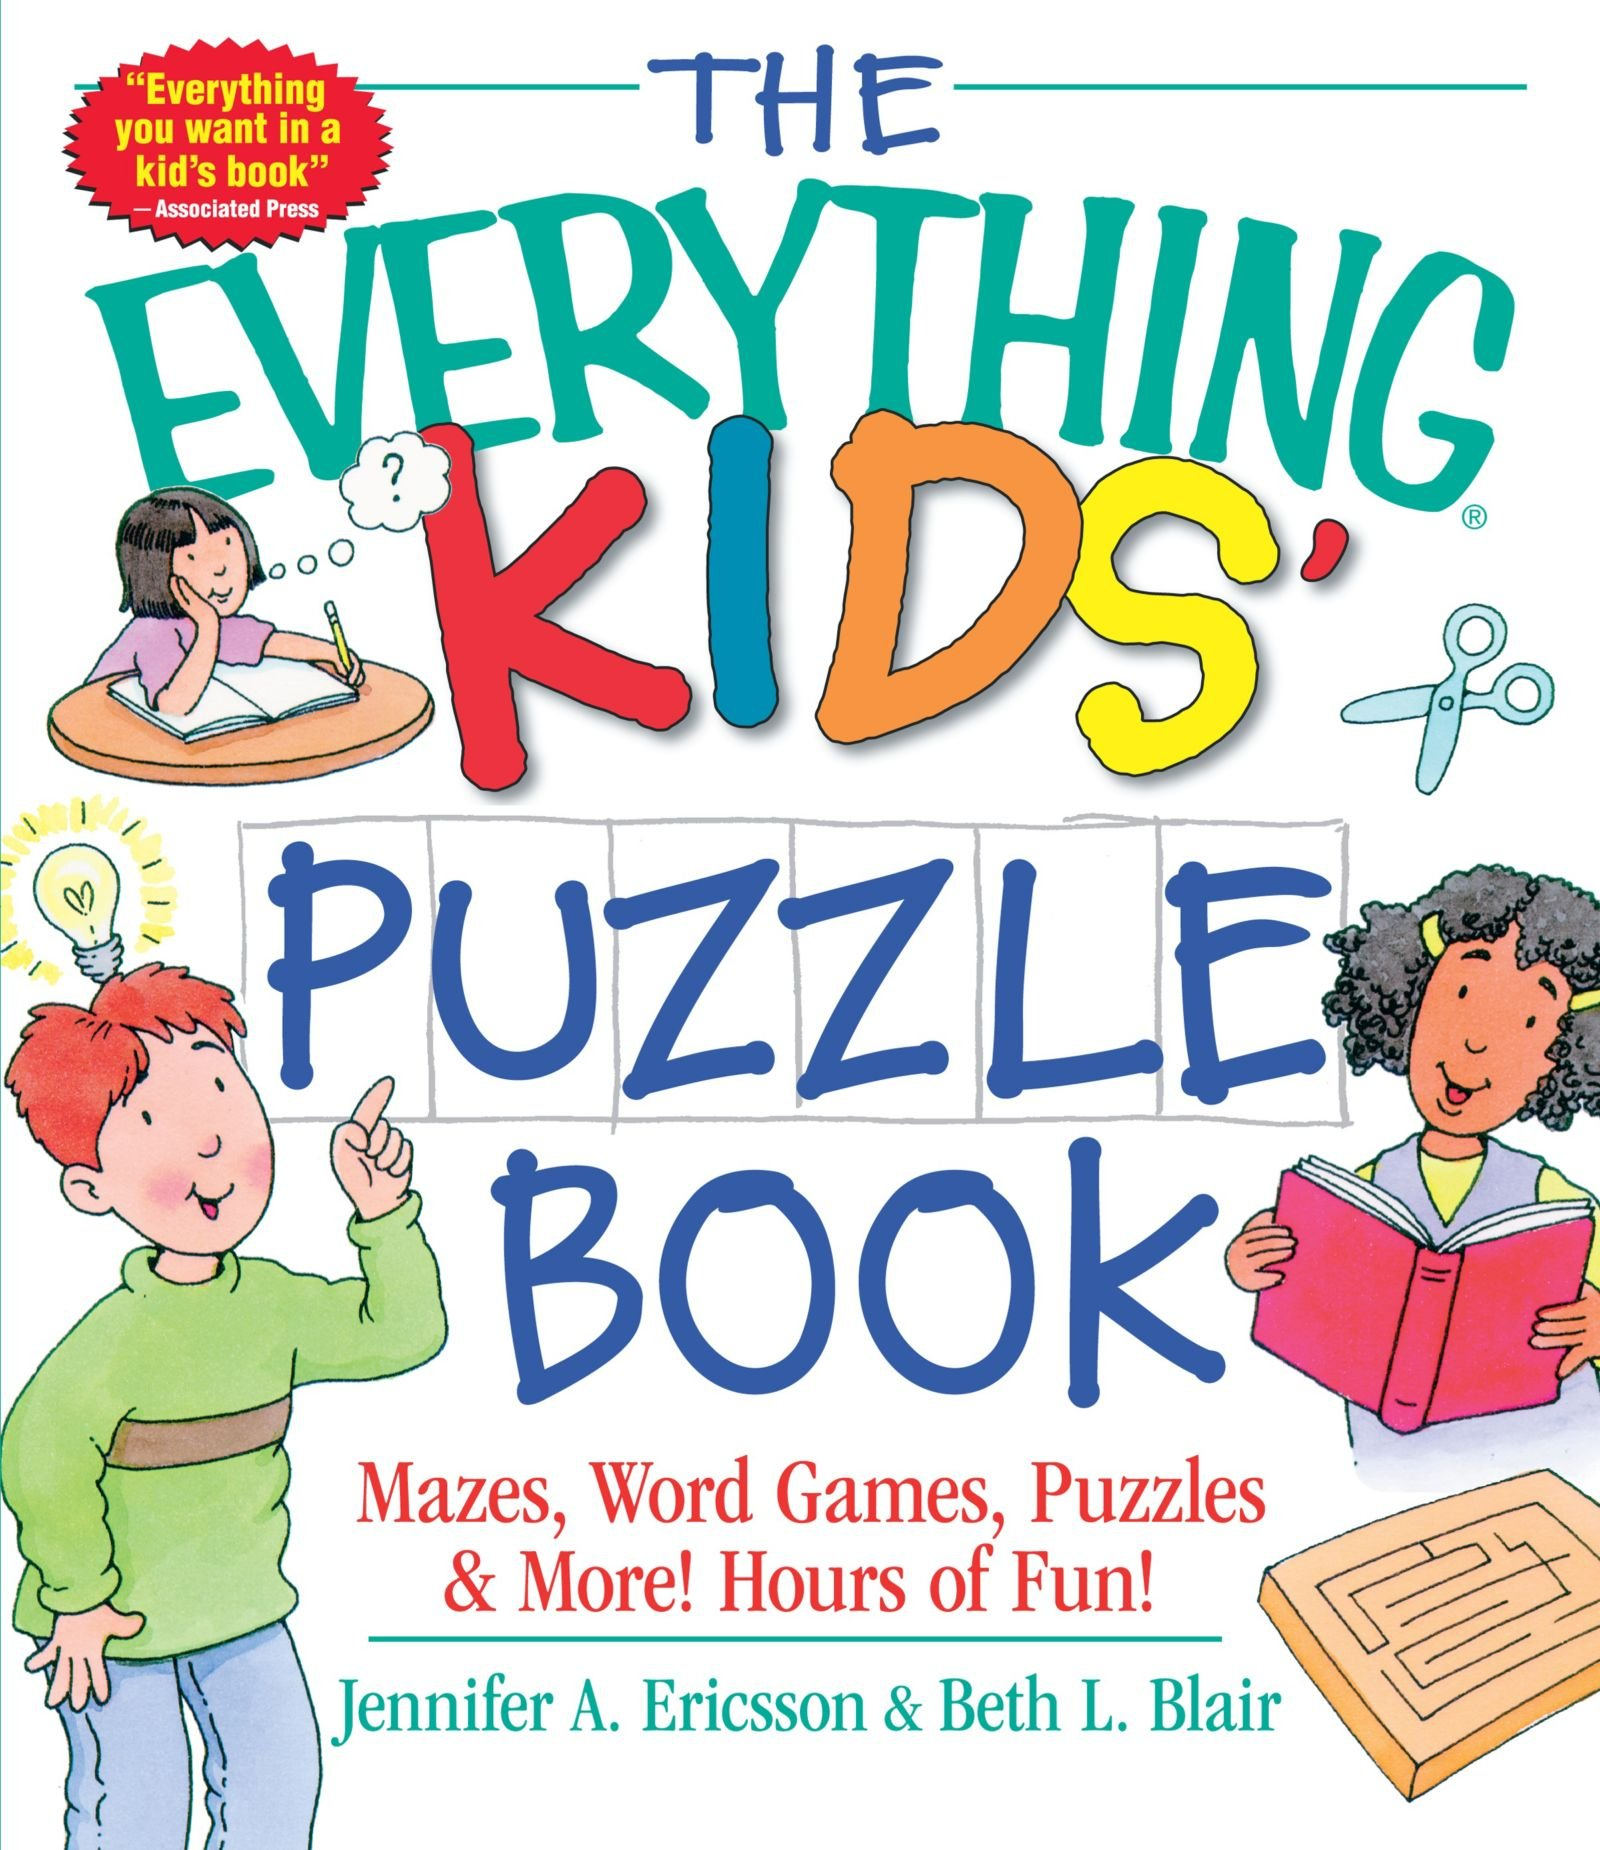 The Everything Kids' Puzzle Book: Mazes, Word Games, Puzzles & More! Hours  of Fun!: Jennifer A Ericsson, Beth L Blair: 0045079206878: Amazon.com: Books